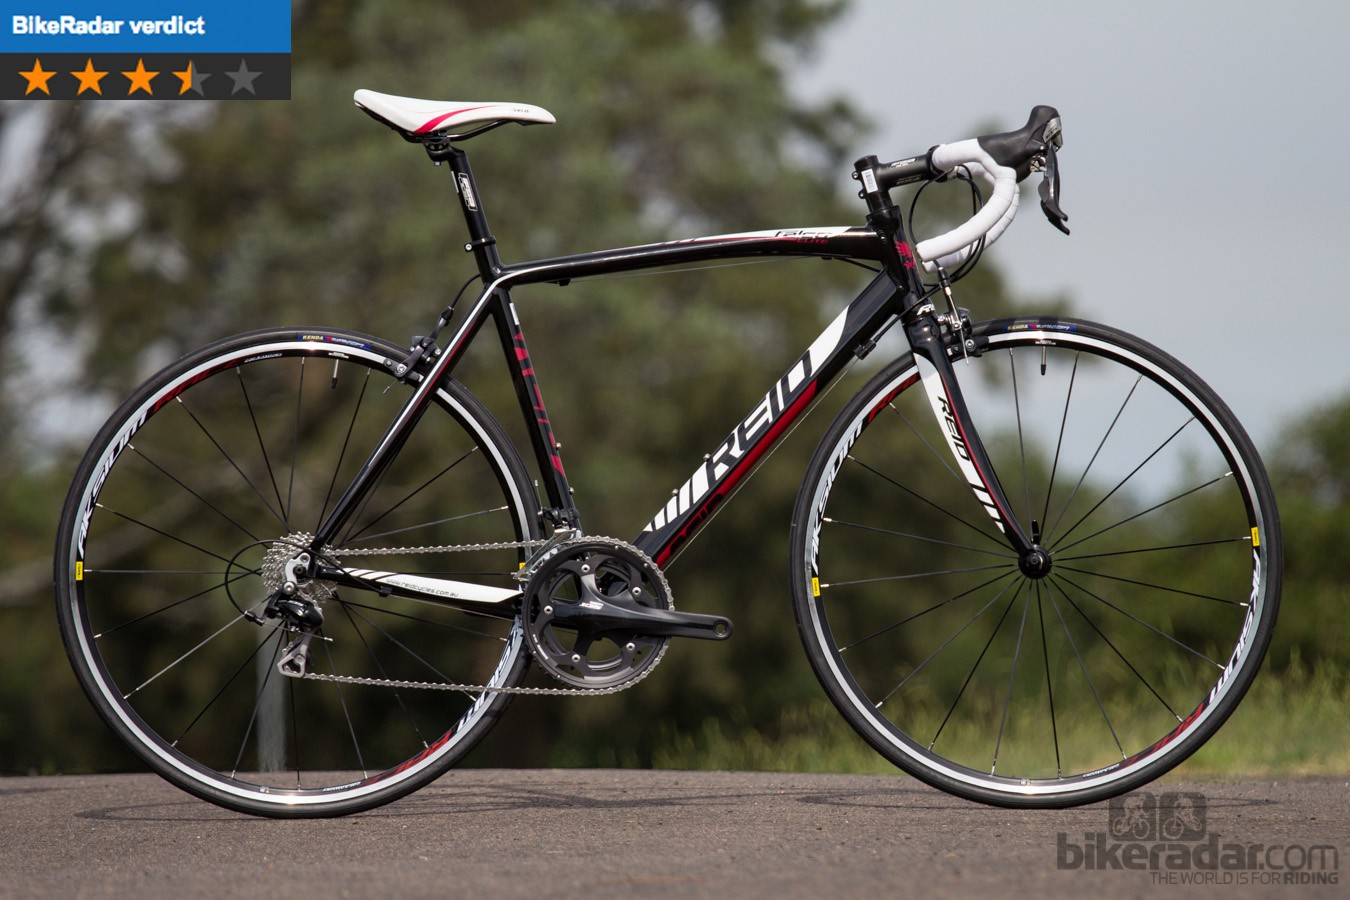 The Reid is a solid choice, but has ride quality issues –check the full review to find out more